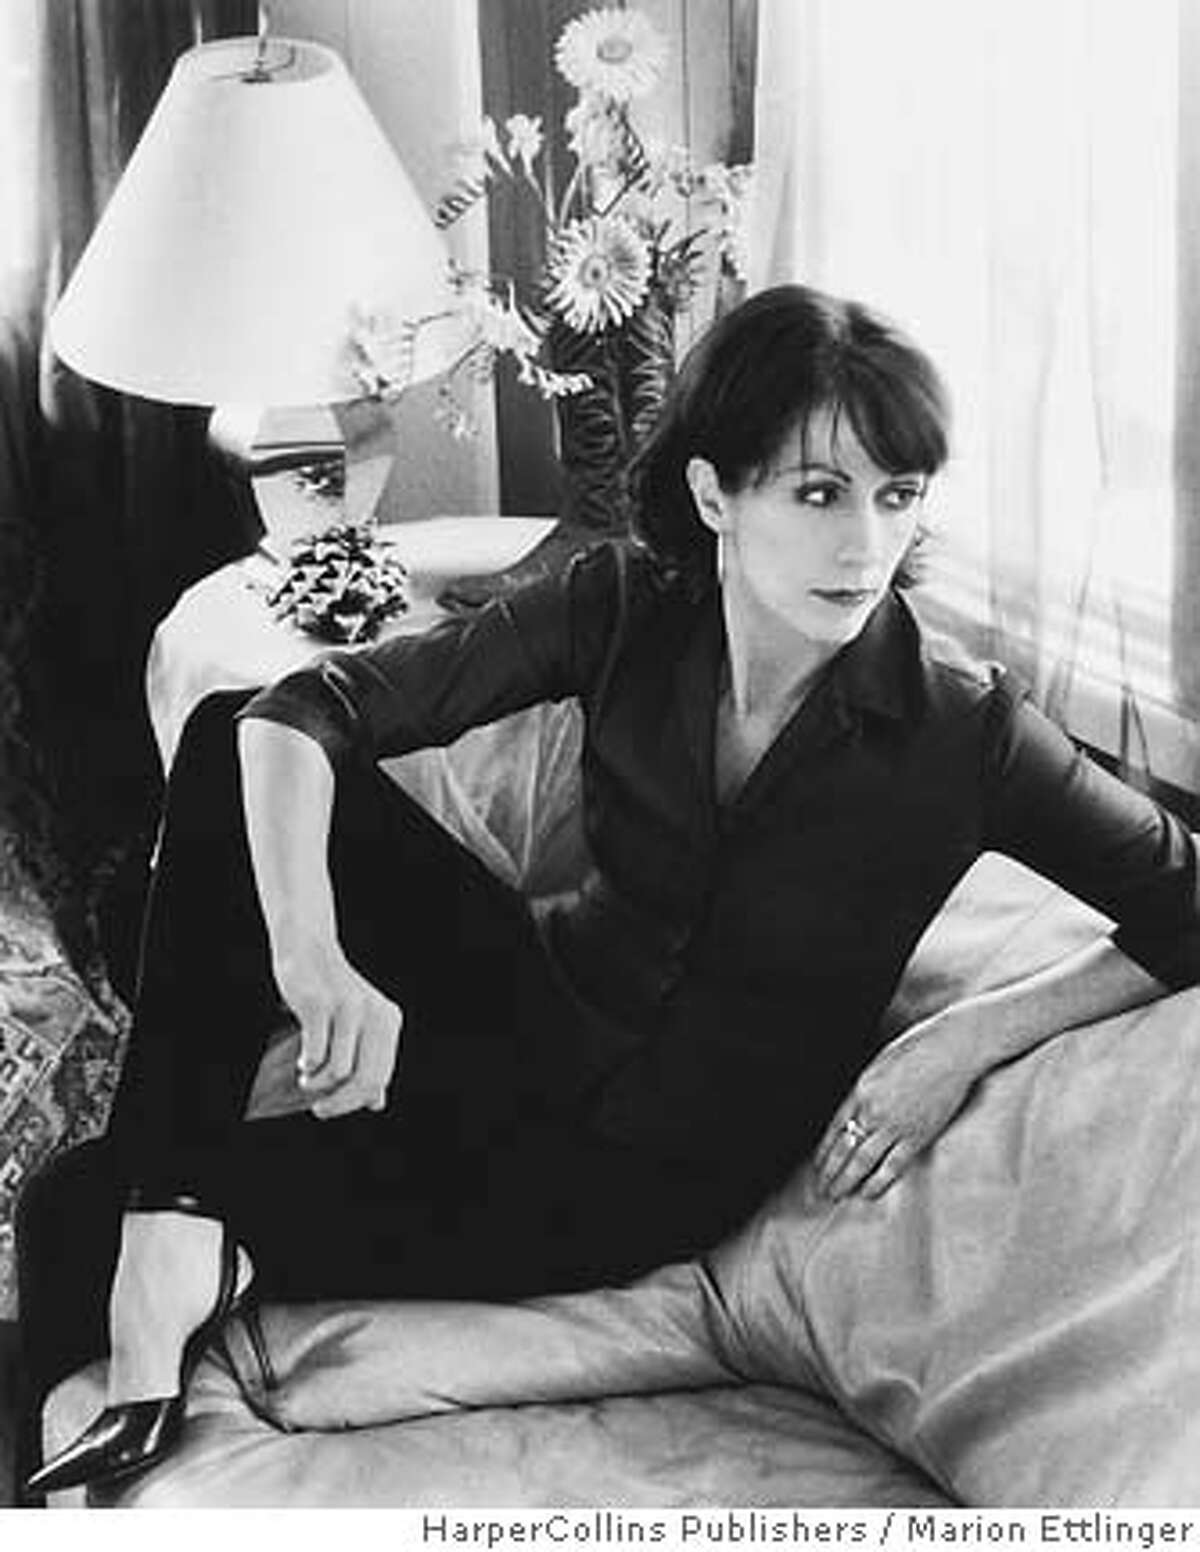 mary karr. photo credit: marion ettlinger. handout from harpercollins